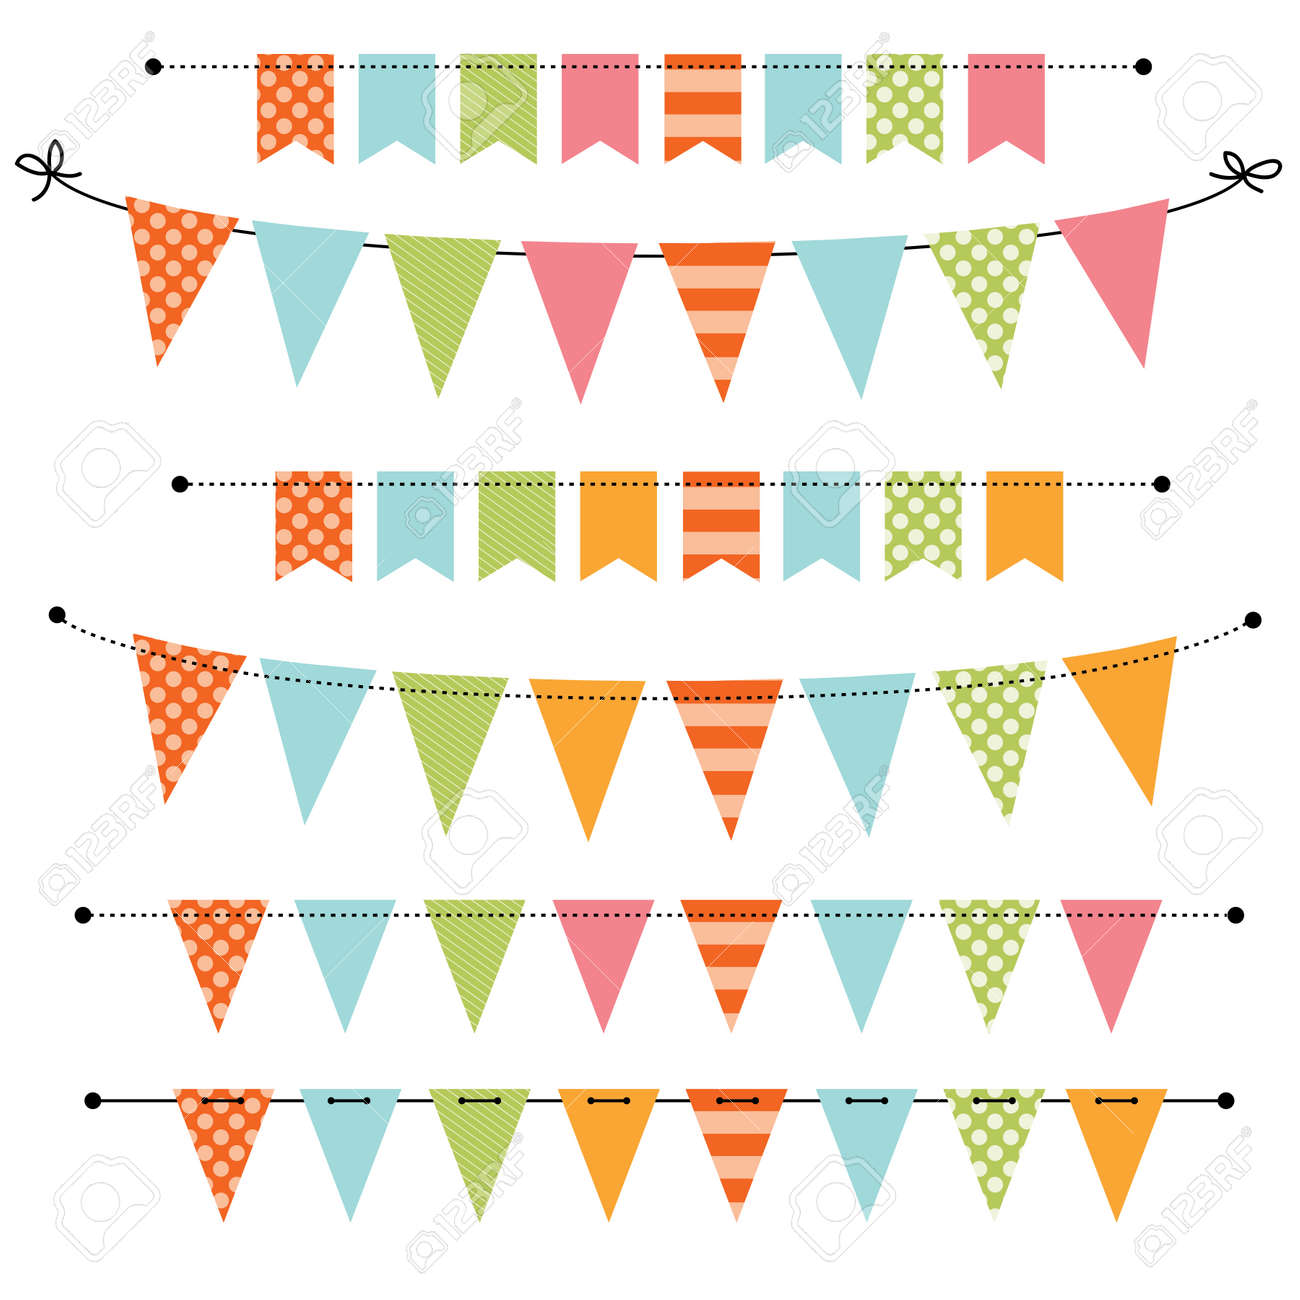 Blank Banner Bunting Or Swag Templates For Scrapbooking Parties Royalty Free Cliparts Vectors And Stock Illustration Image 27747471